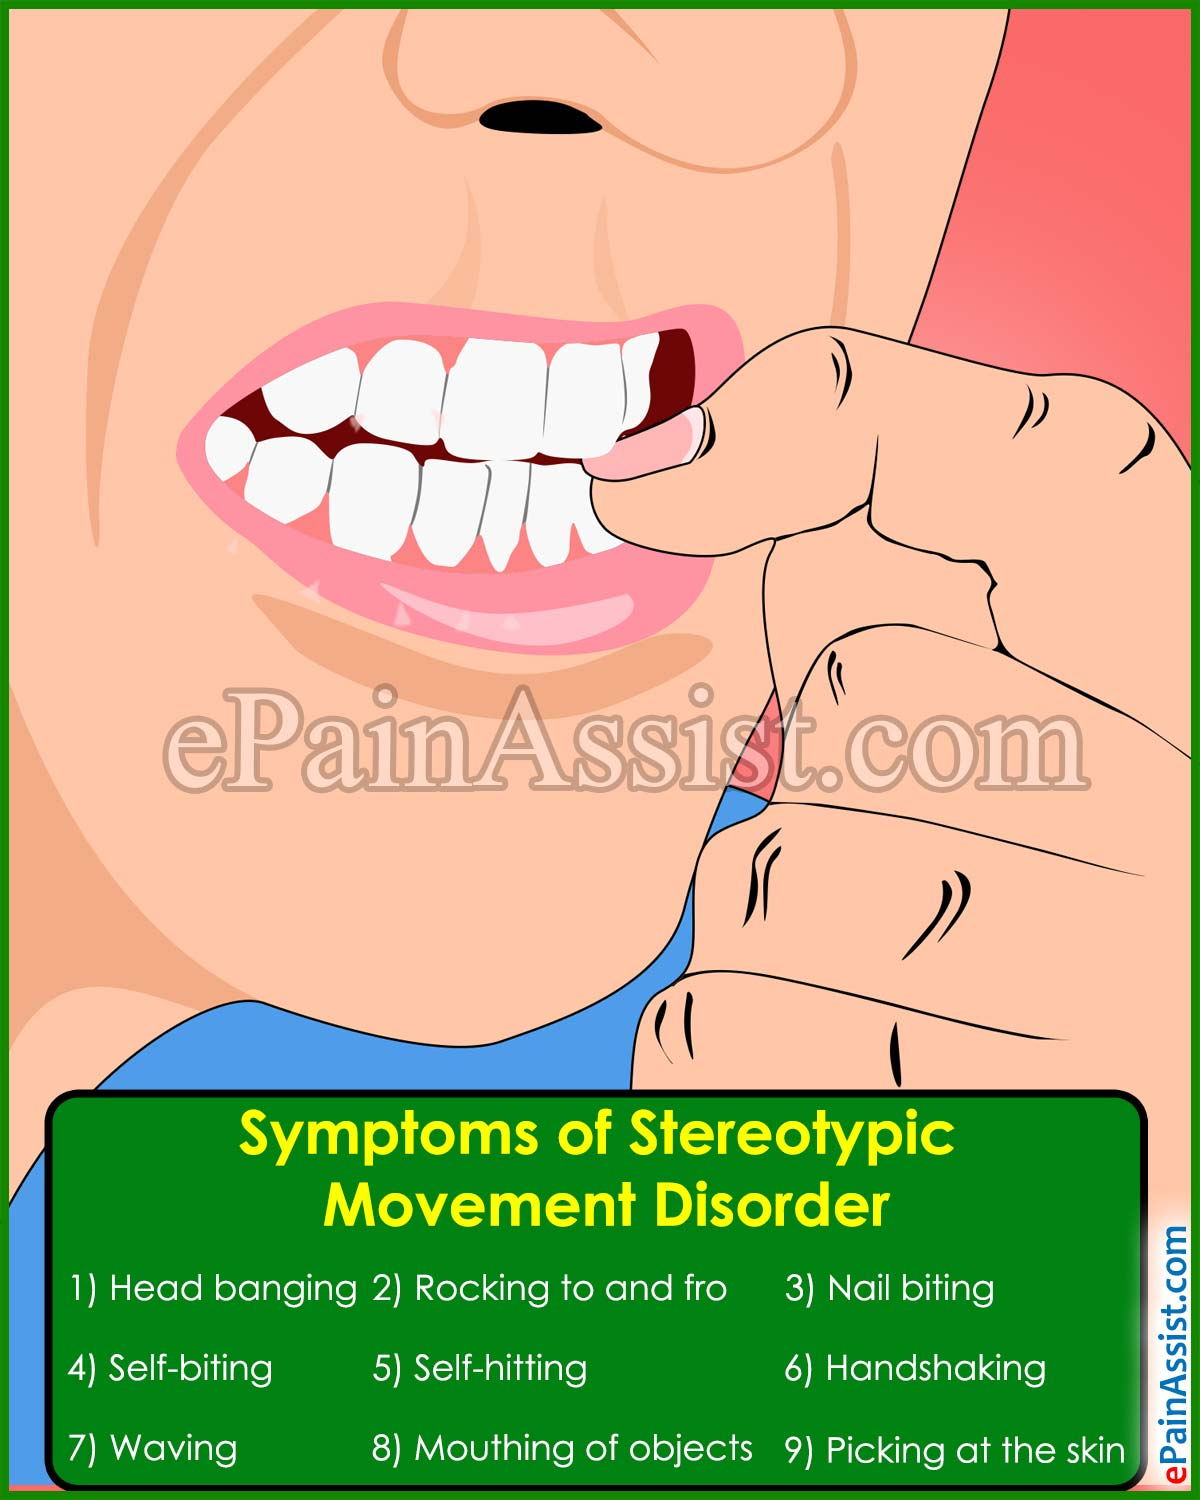 Symptoms of Stereotypic Movement Disorder